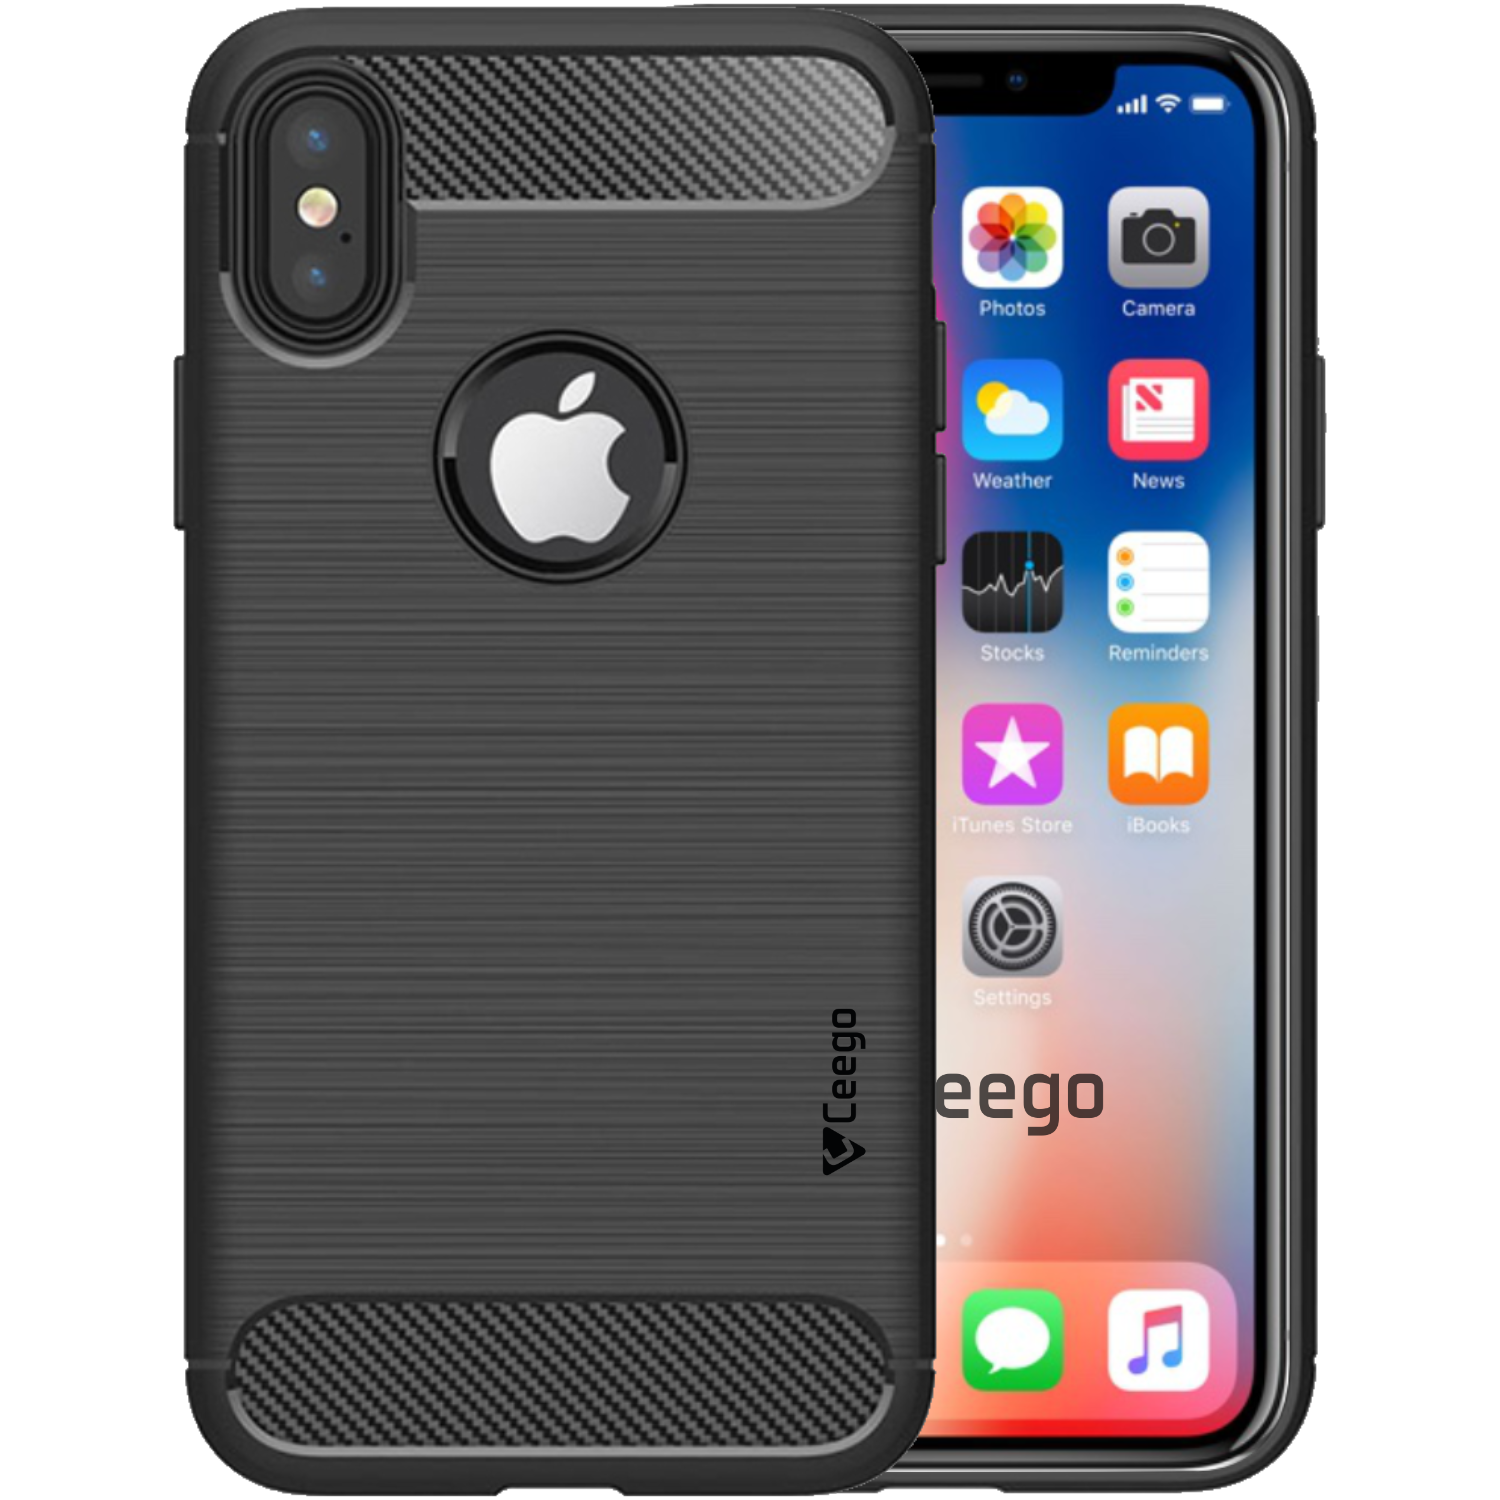 Ceego Carbon Fiber Shield Back Case for iPhone X  – Matte Black